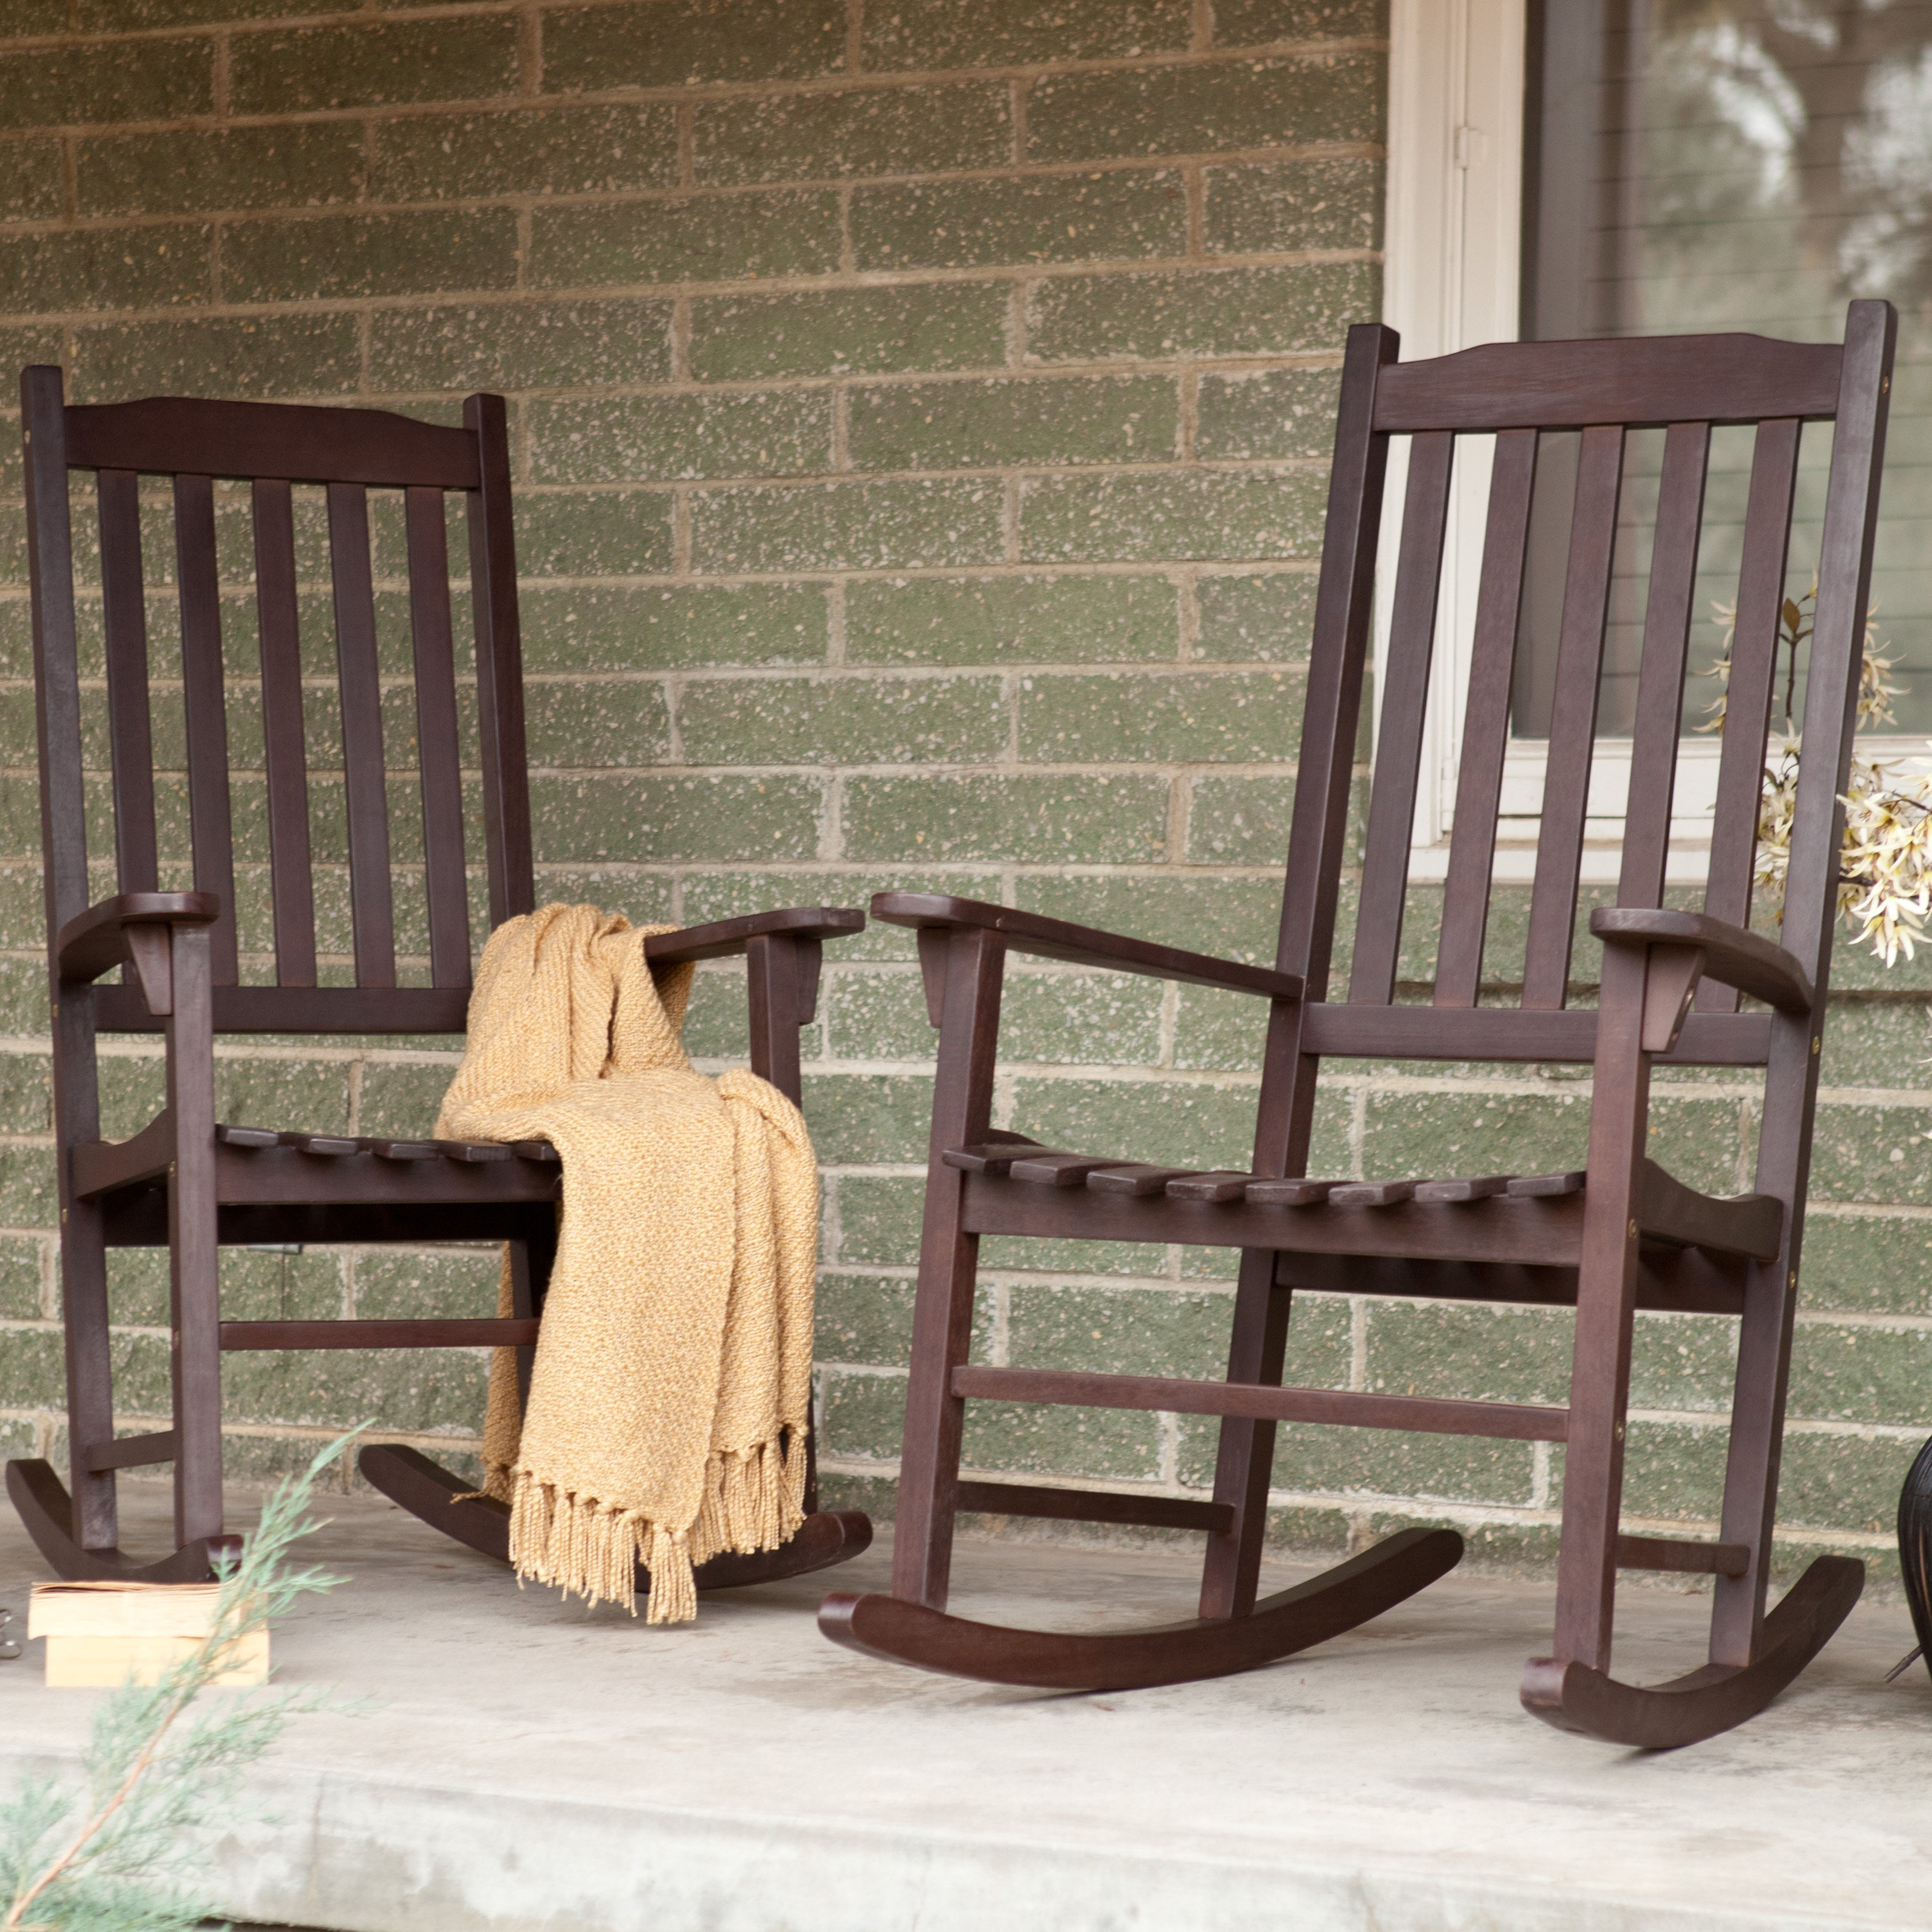 coral coast indoor/outdoor mission slat rocking chairs - dark brown - set JDFDTPU